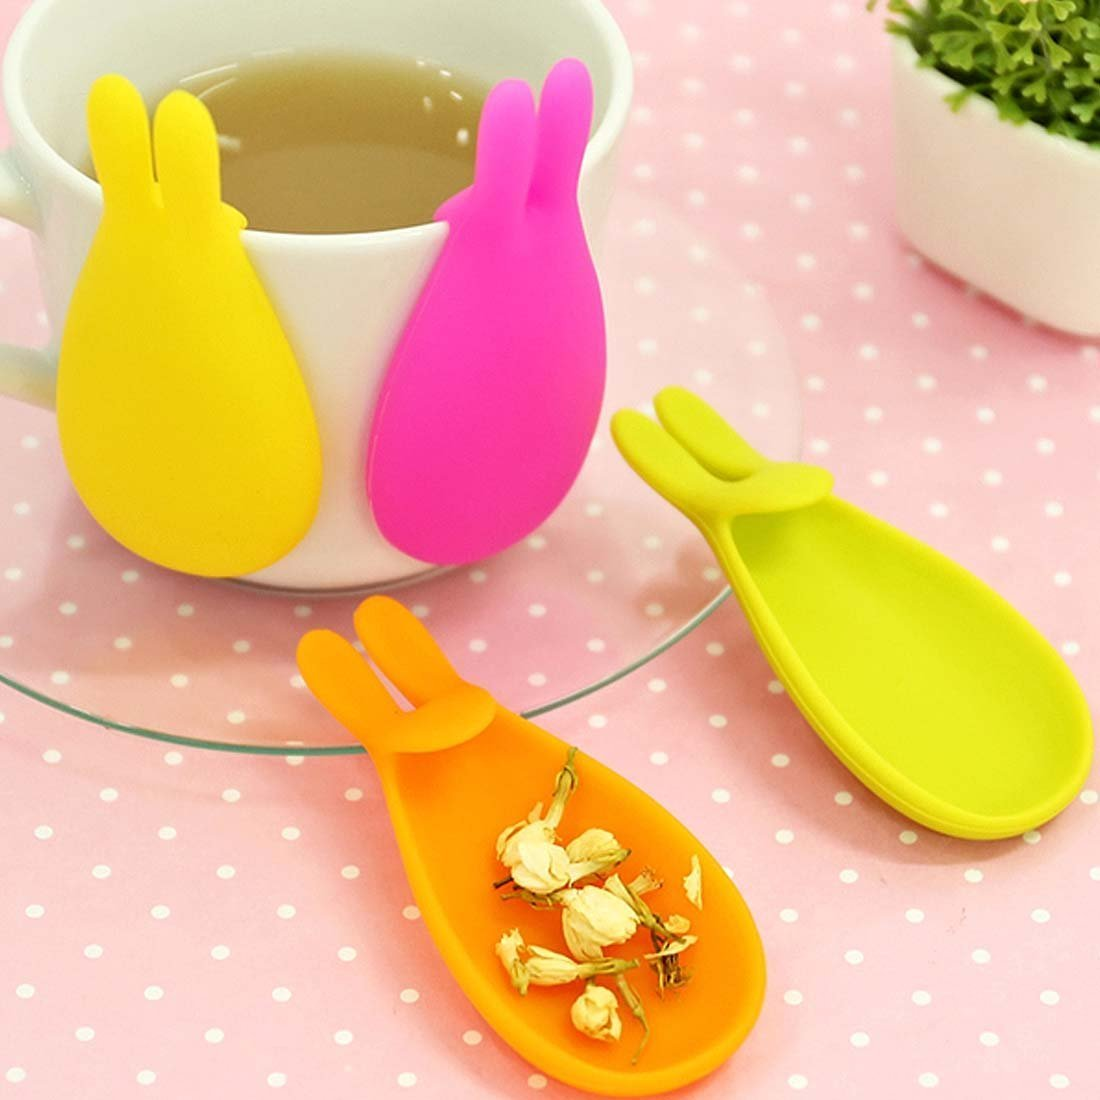 Naranqa Adorable Cute Bunny Tea Bag Holder and Resting Caddy Spoon Rest Set of 5, Assorted Color, Best Gift for Home and Office